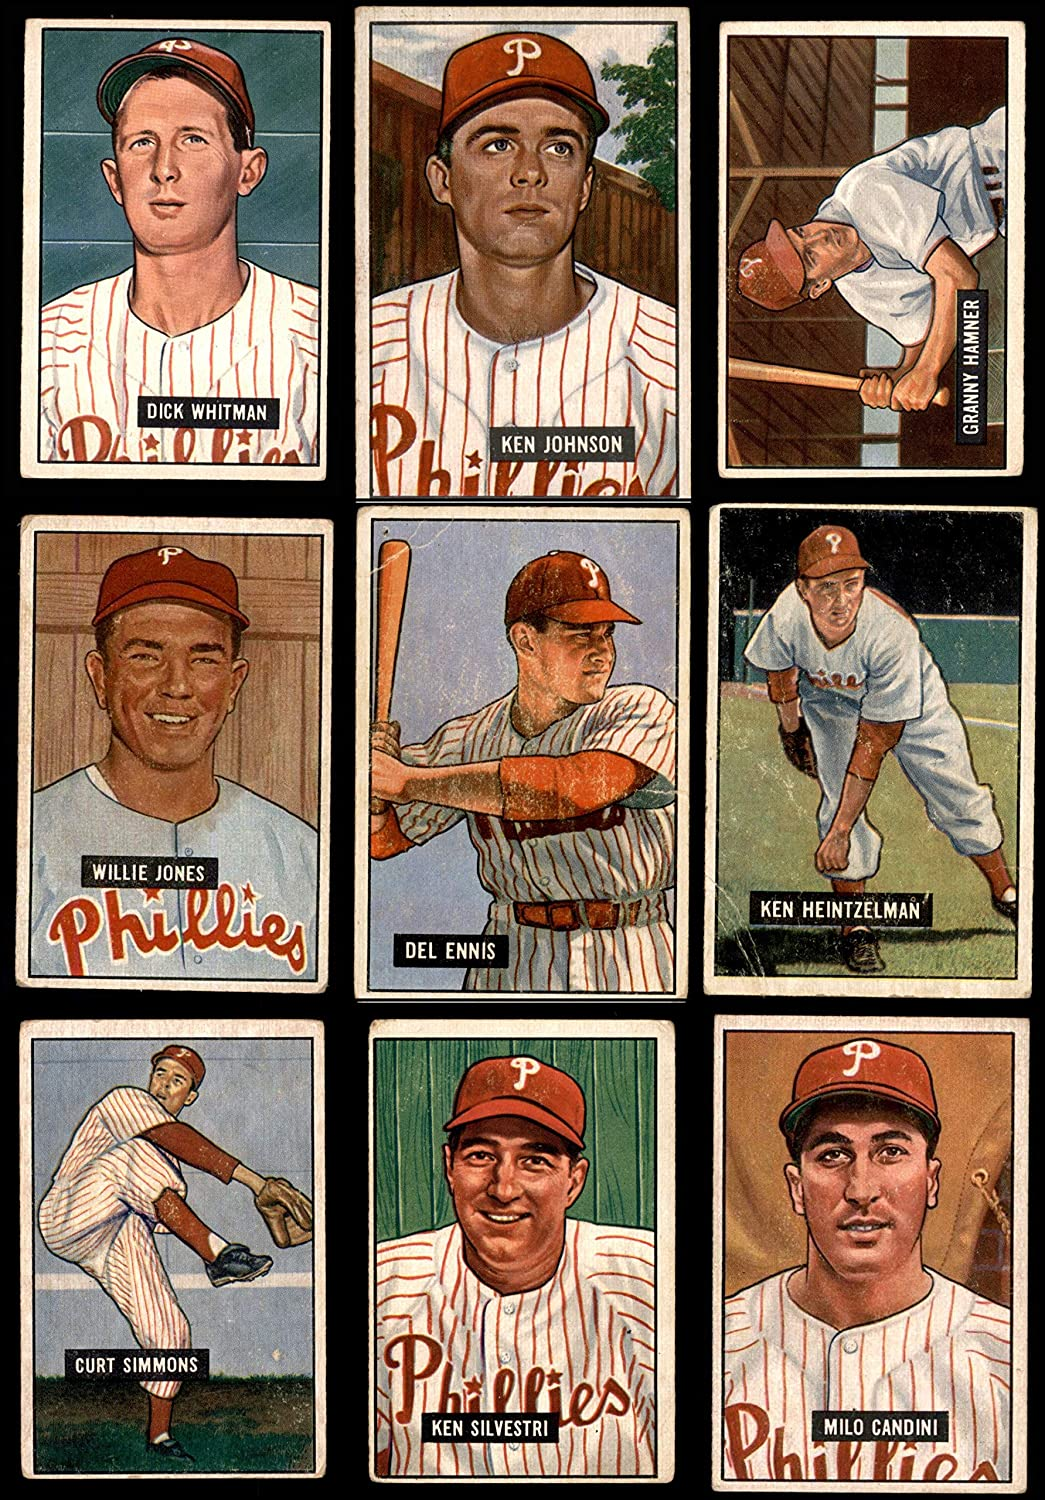 1951 Bowman Philadelphia Phillies Team Set Philadelphia Phillies (Baseball Set) Dean's Cards 2.5 - GD+ Phillies 91V3Uzb2BoCLSL1500_